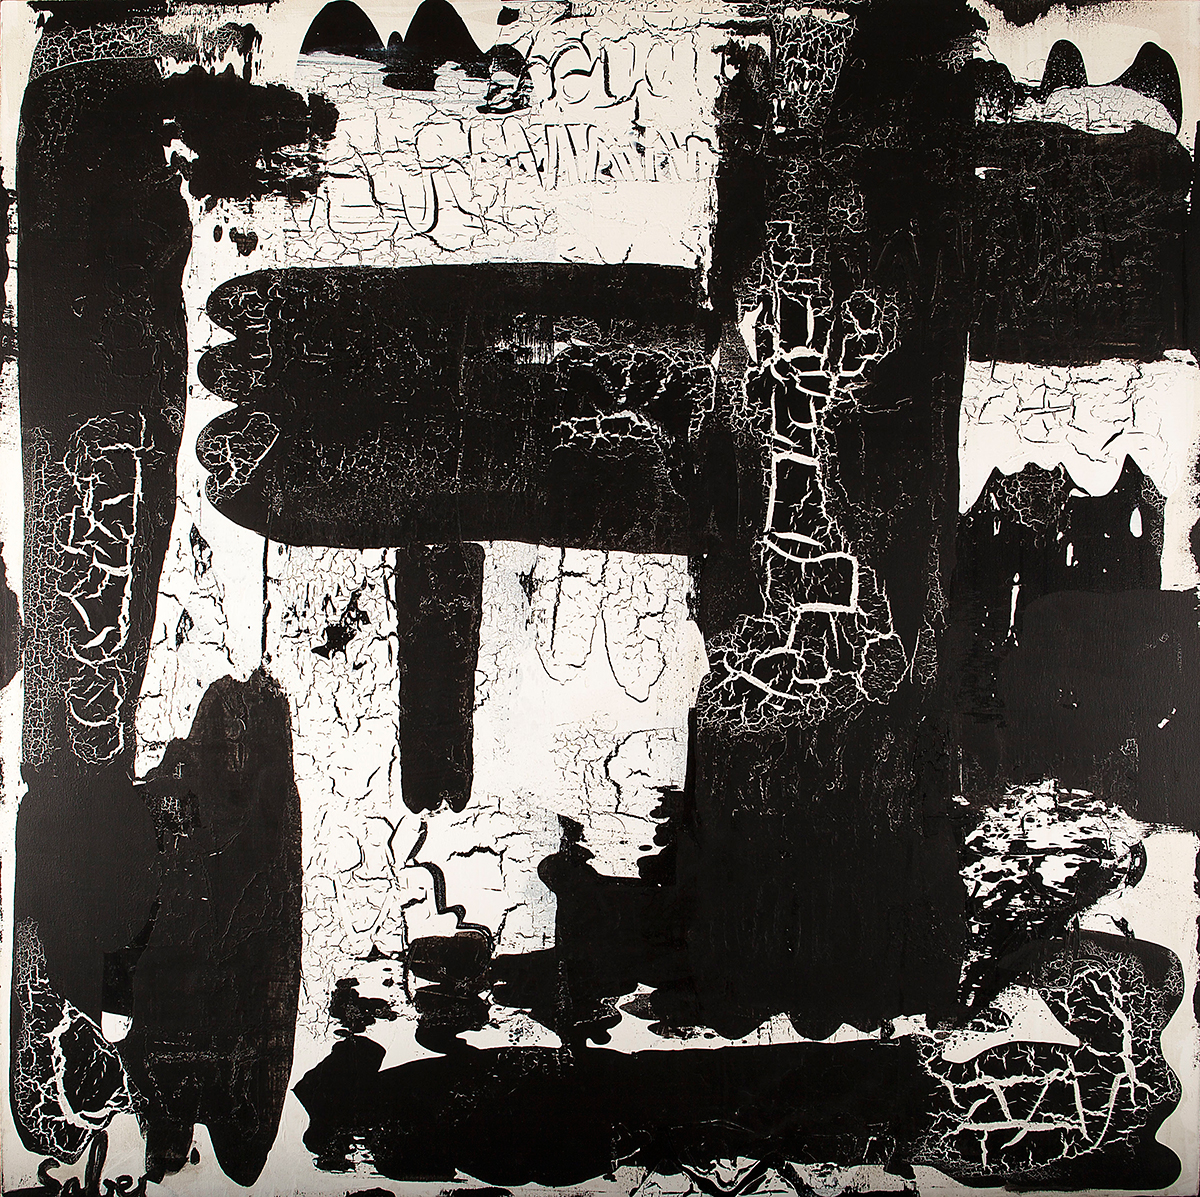 Black & White Abstract Painting - Saber